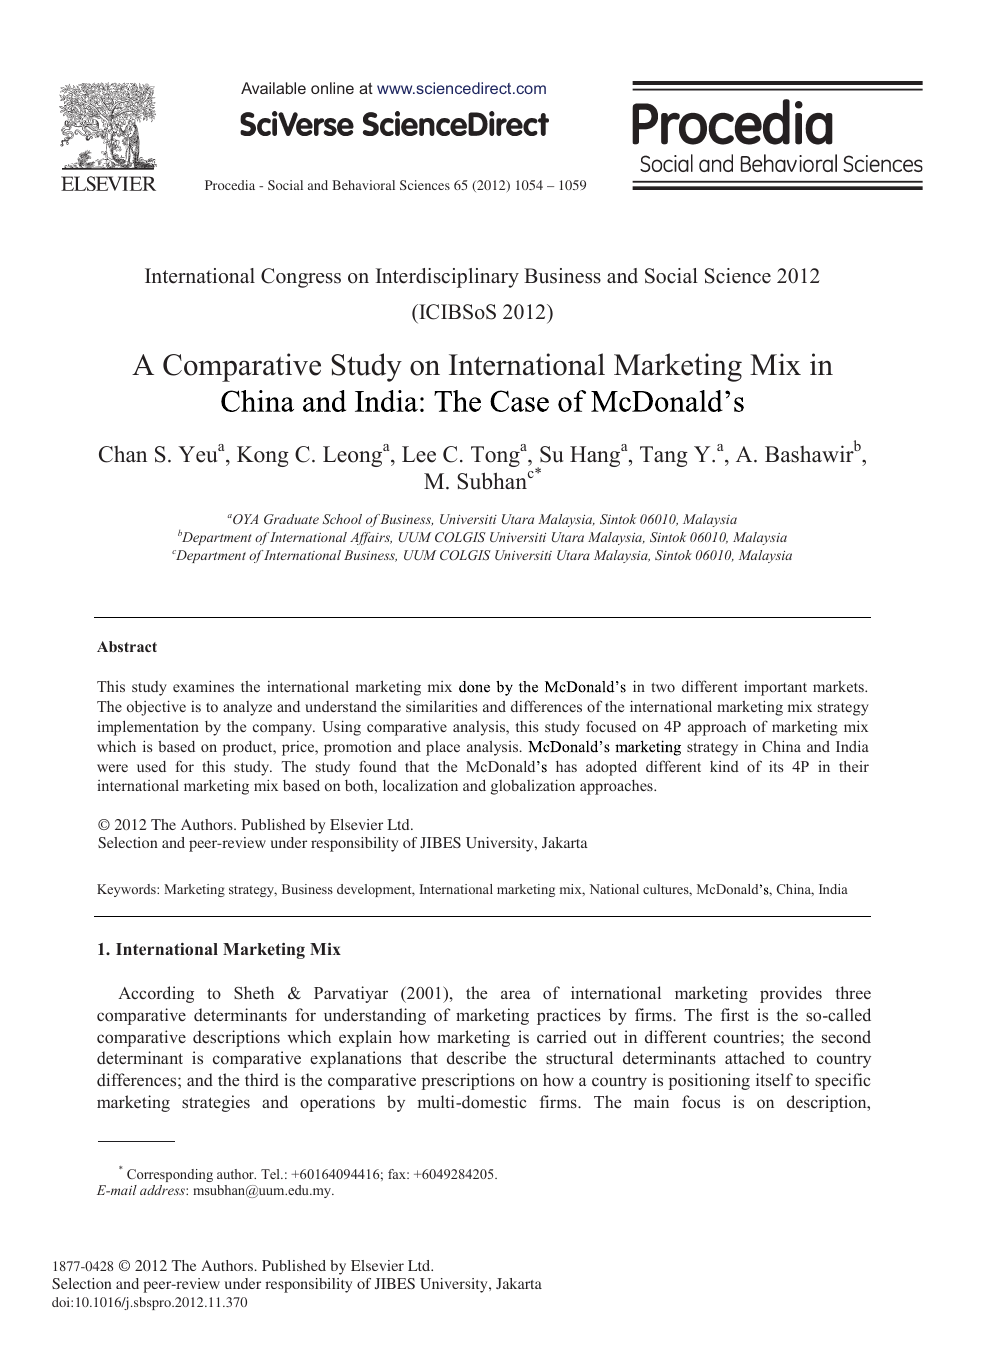 A Comparative Study on International Marketing Mix in China and